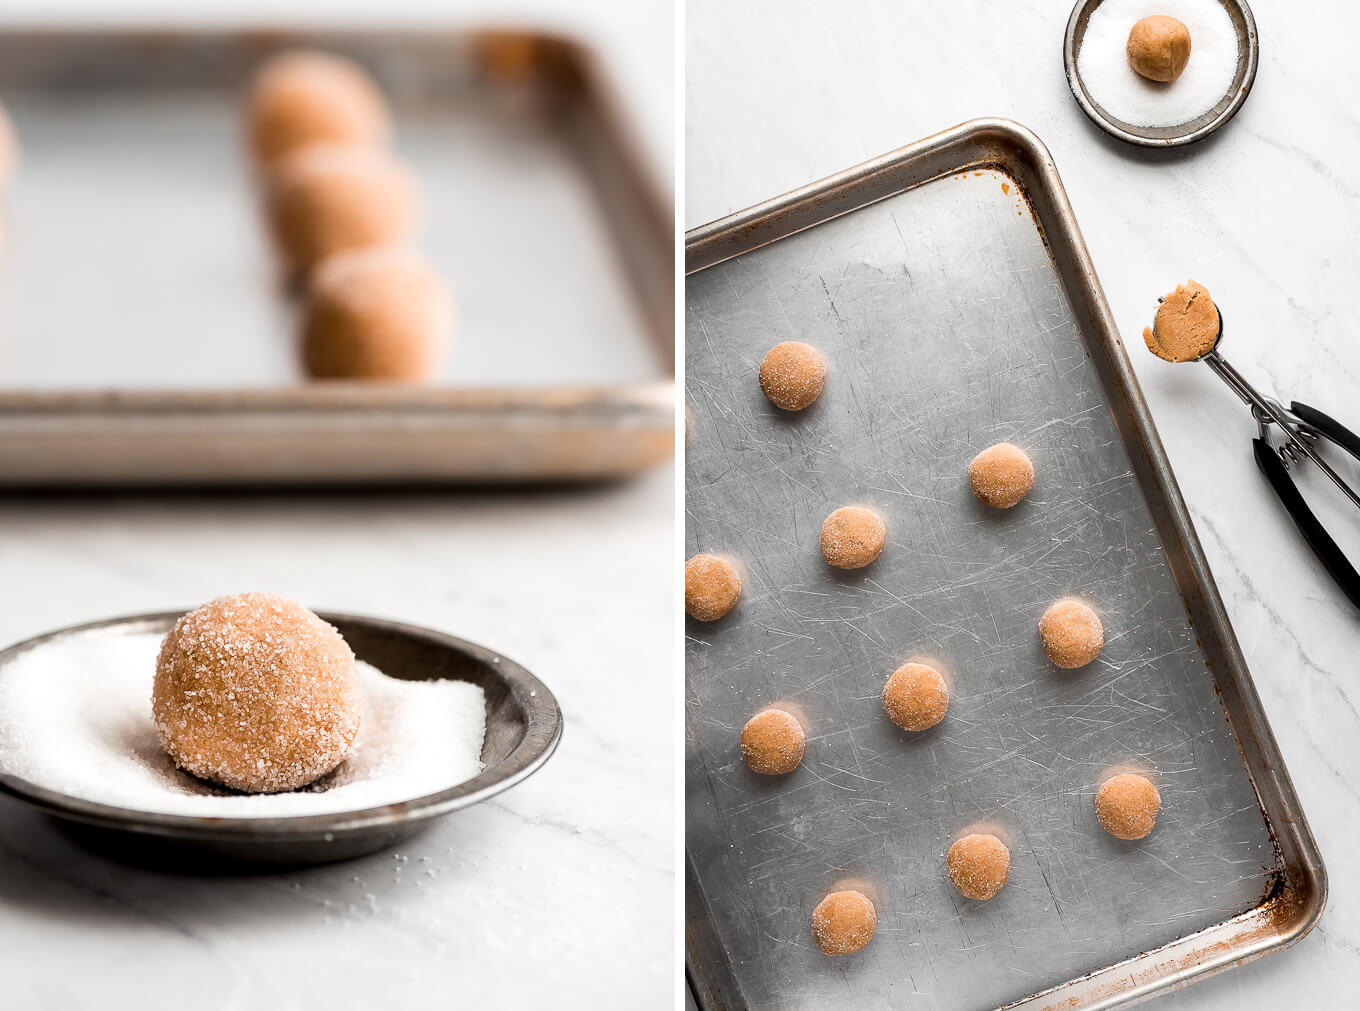 Rolling balls of cookie dough in sugar and balls of cookie dough on a baking sheet.